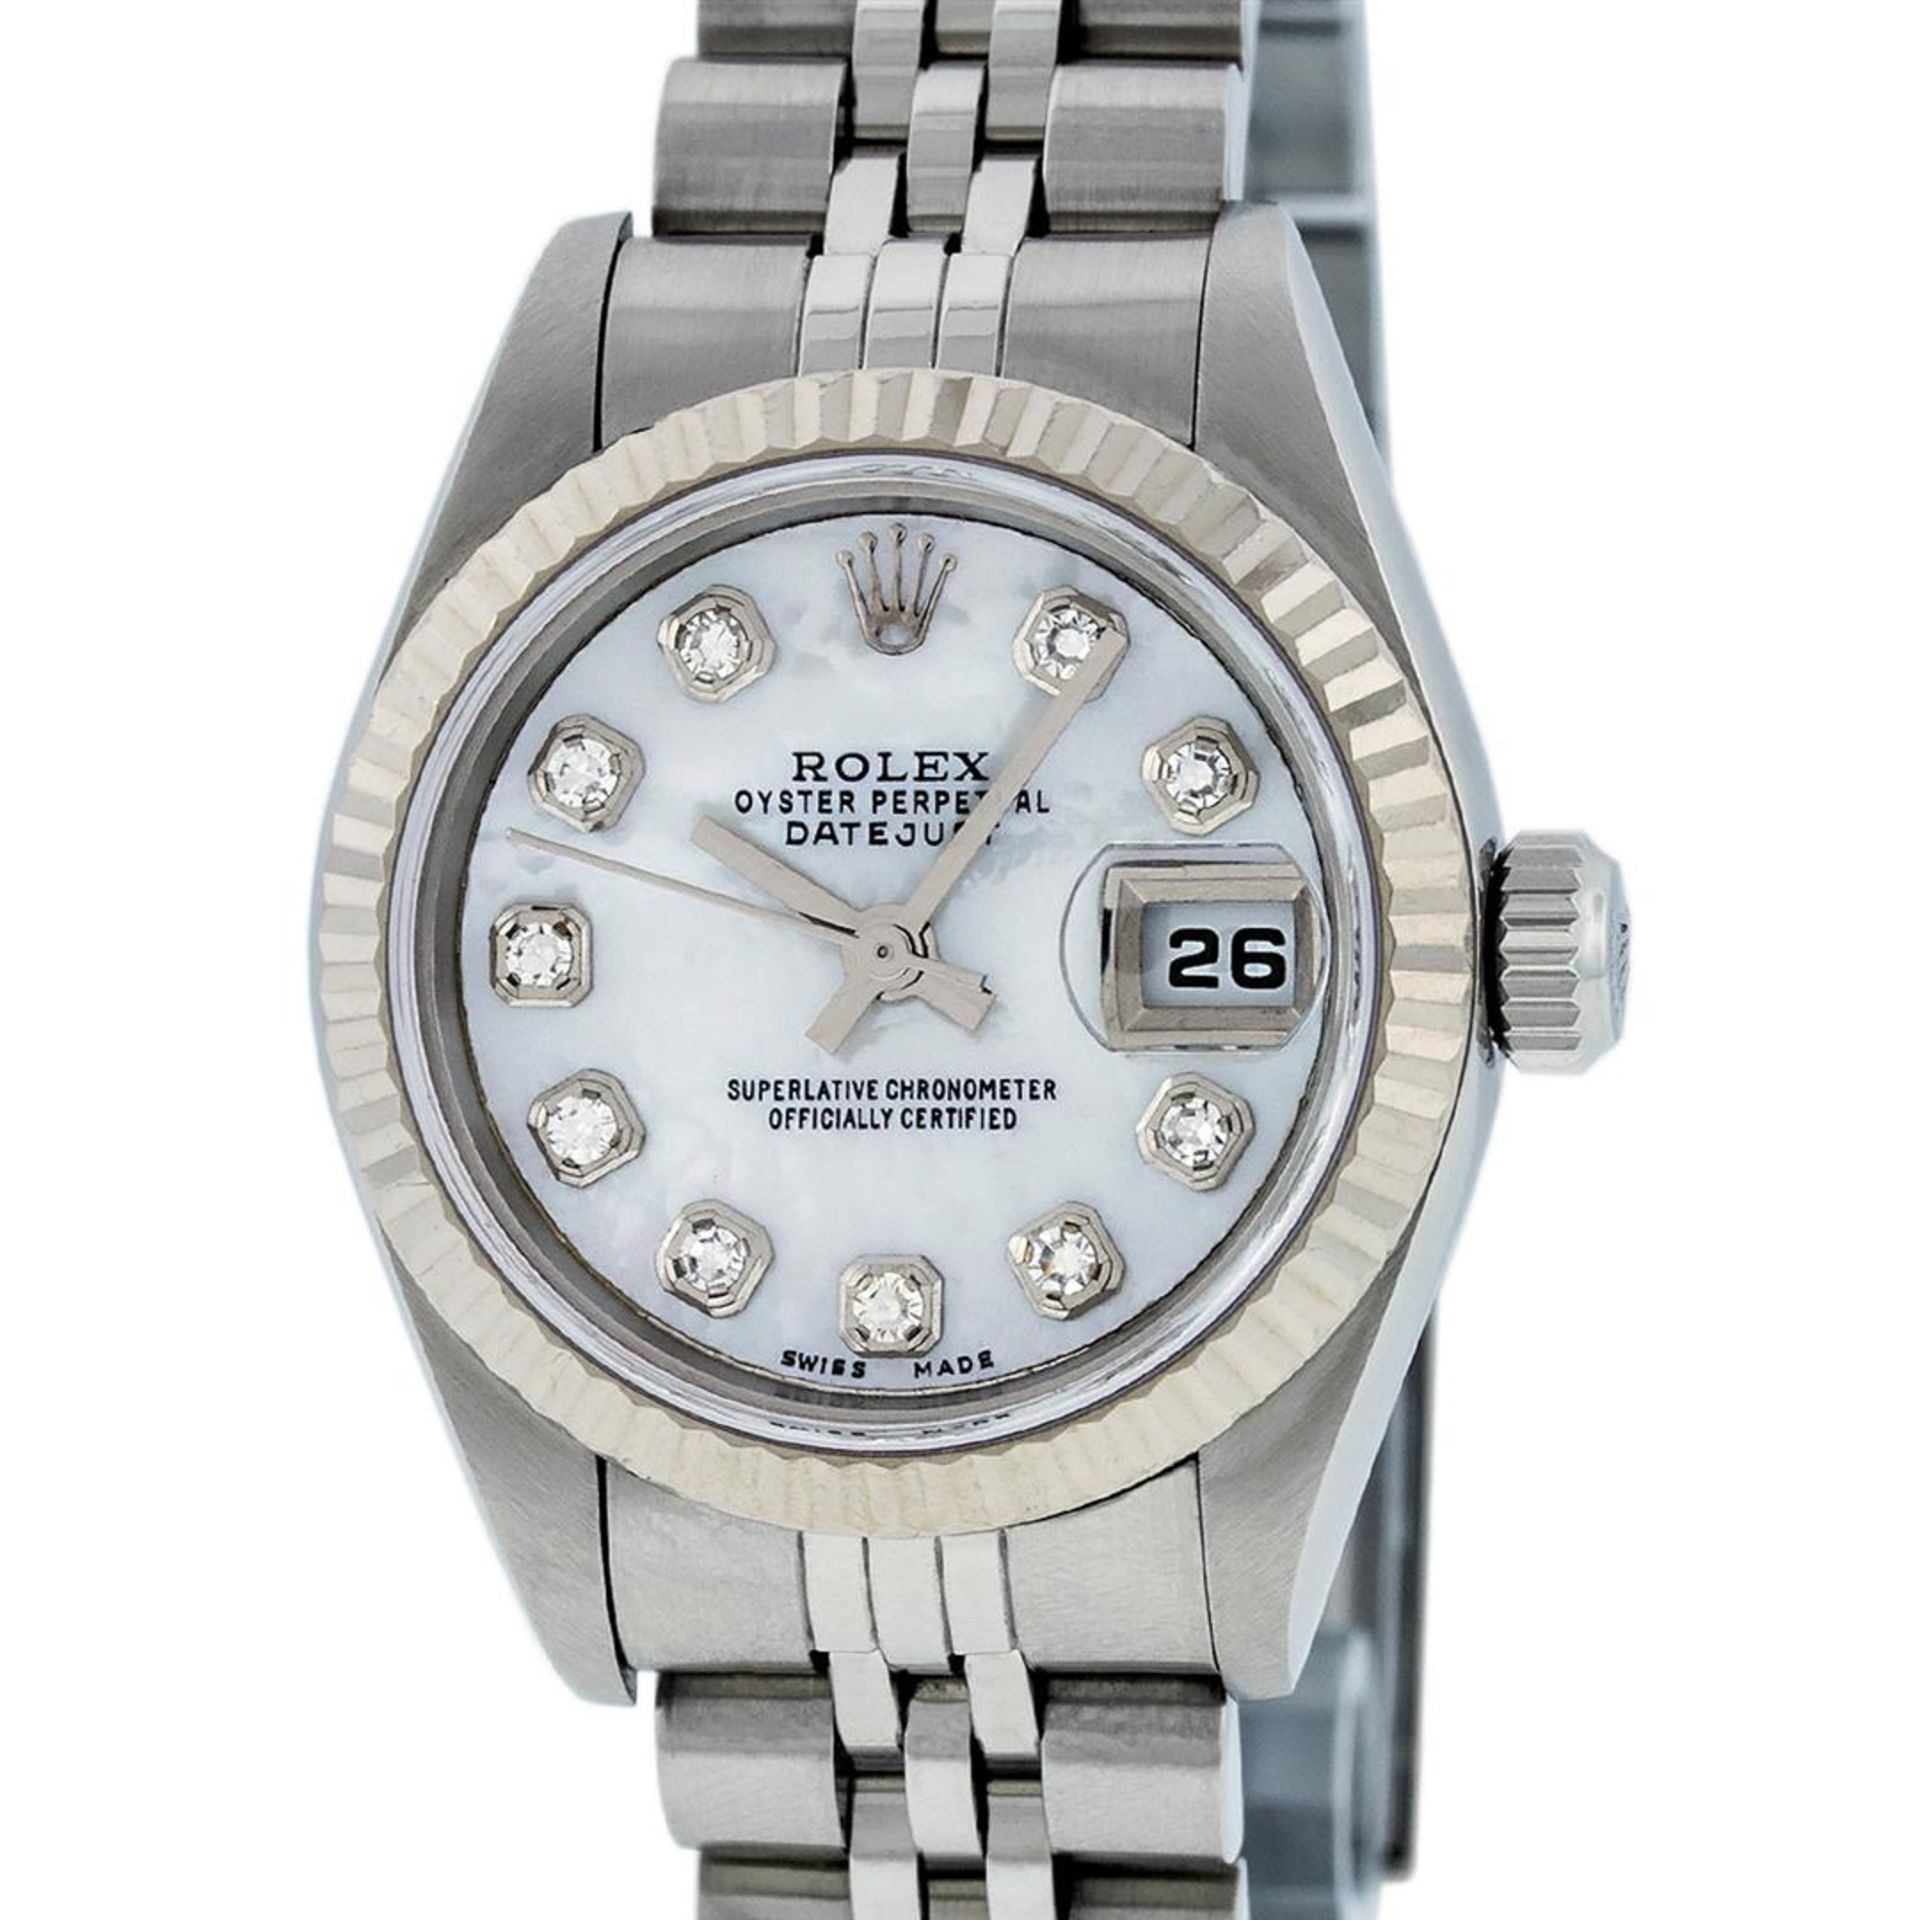 Rolex Ladies Stainless Steel Mother Of Pearl Diamond Quickset Datejust Wristwatc - Image 2 of 9